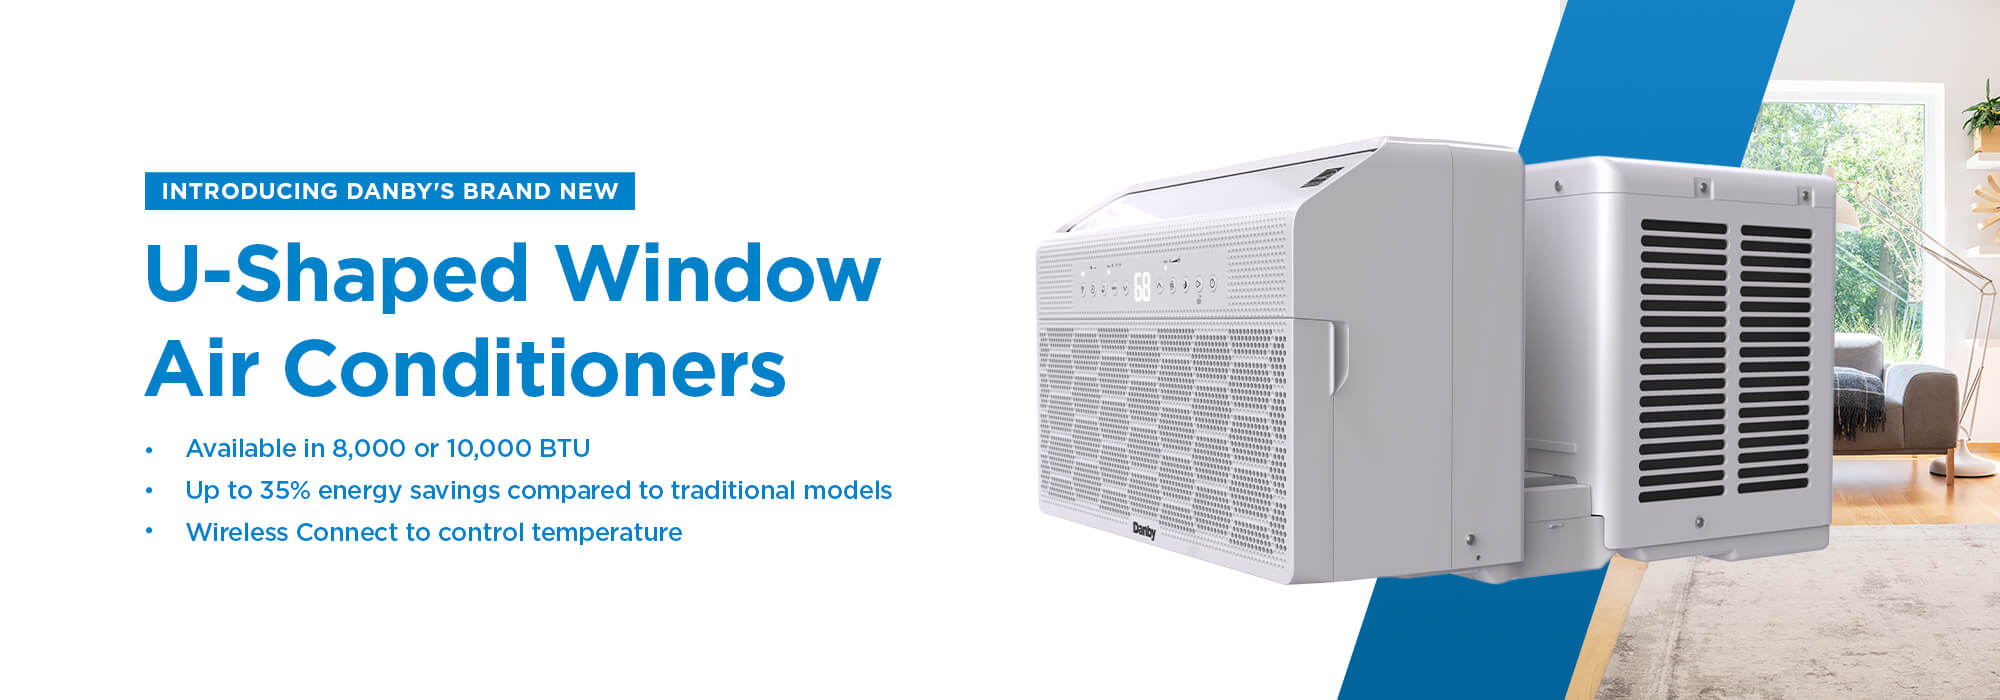 U-Shaped Window Air Conditioners Avaialbe in 8,000 or 10,000 BTU. Up to 35% energy savings compared to traditional modes. Wireless Connect to control temperature